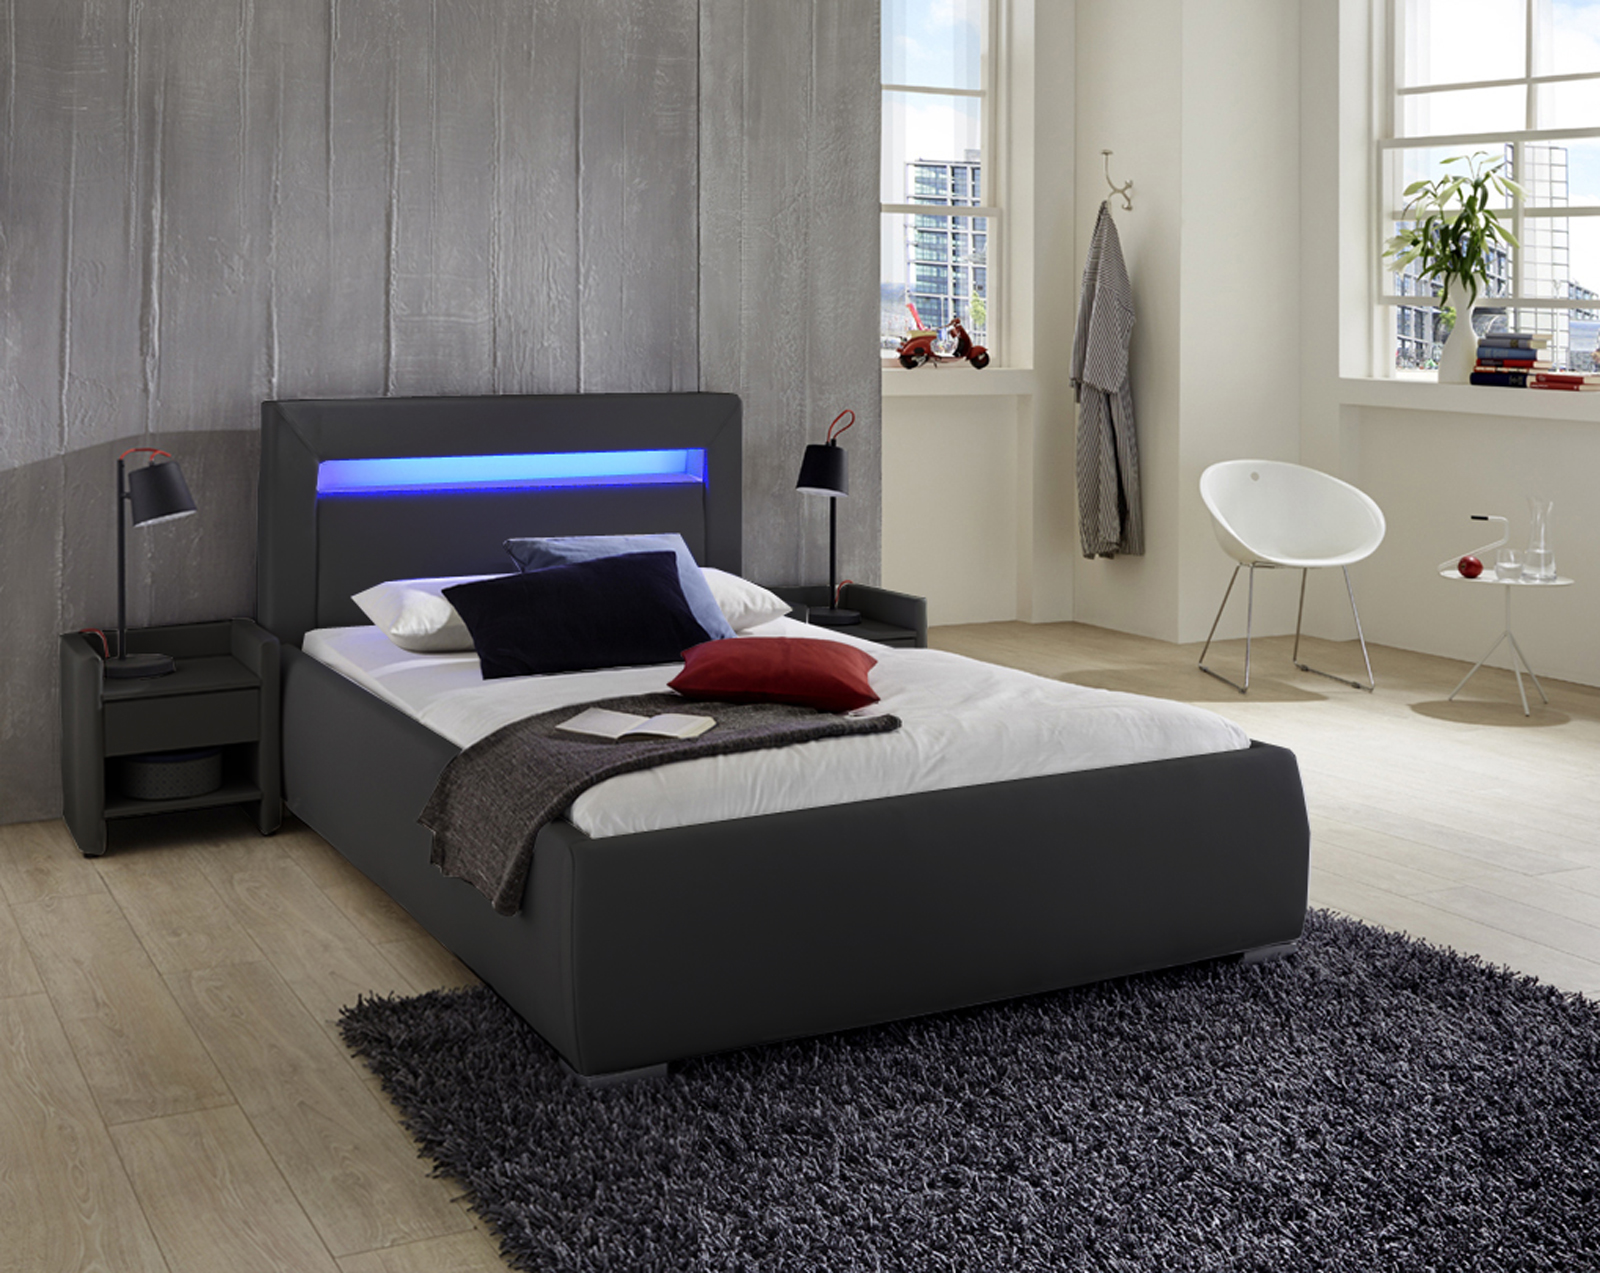 sale polsterbett 90x200 cm schwarz jugendbett led beleuchtung lumina. Black Bedroom Furniture Sets. Home Design Ideas